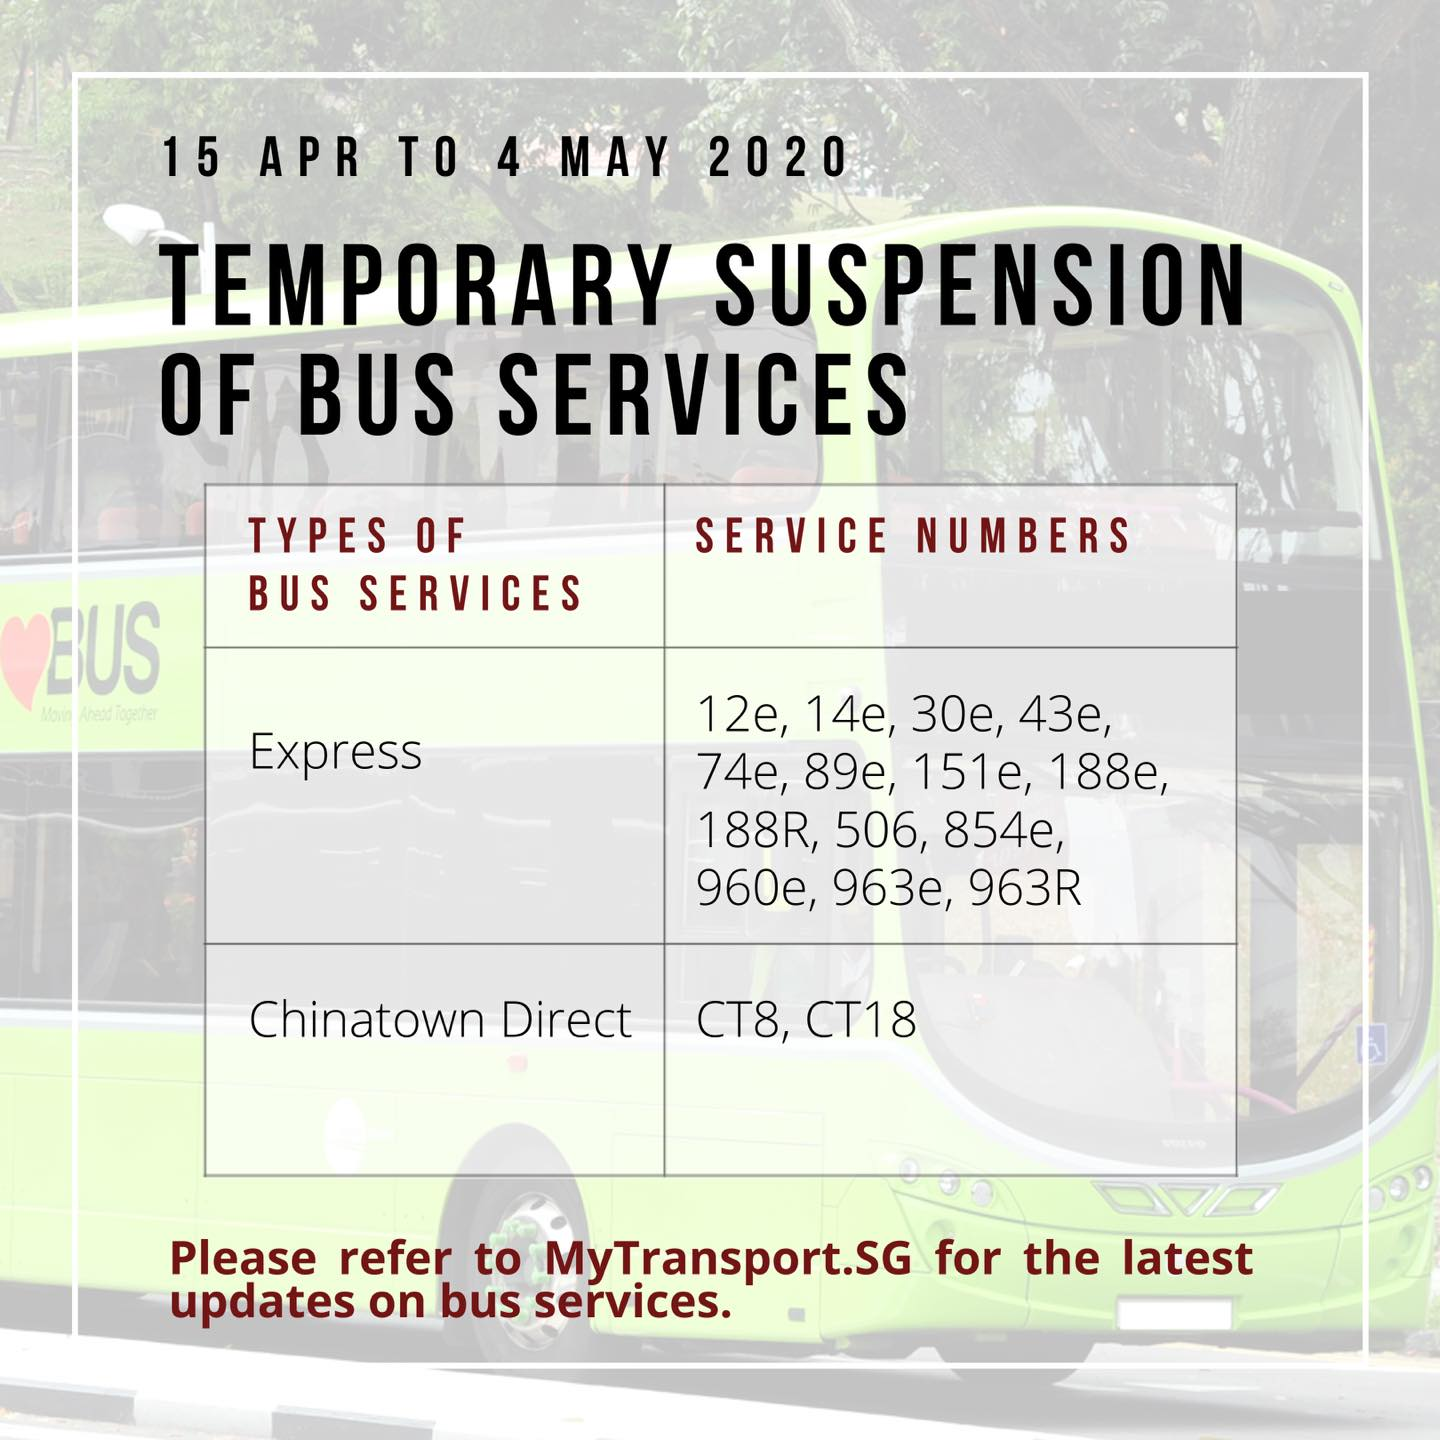 Official consolidated information from Land Transport Authority on temporary bus service suspension during COVID-19 Circuit Breaker measures from 15 April 2020.